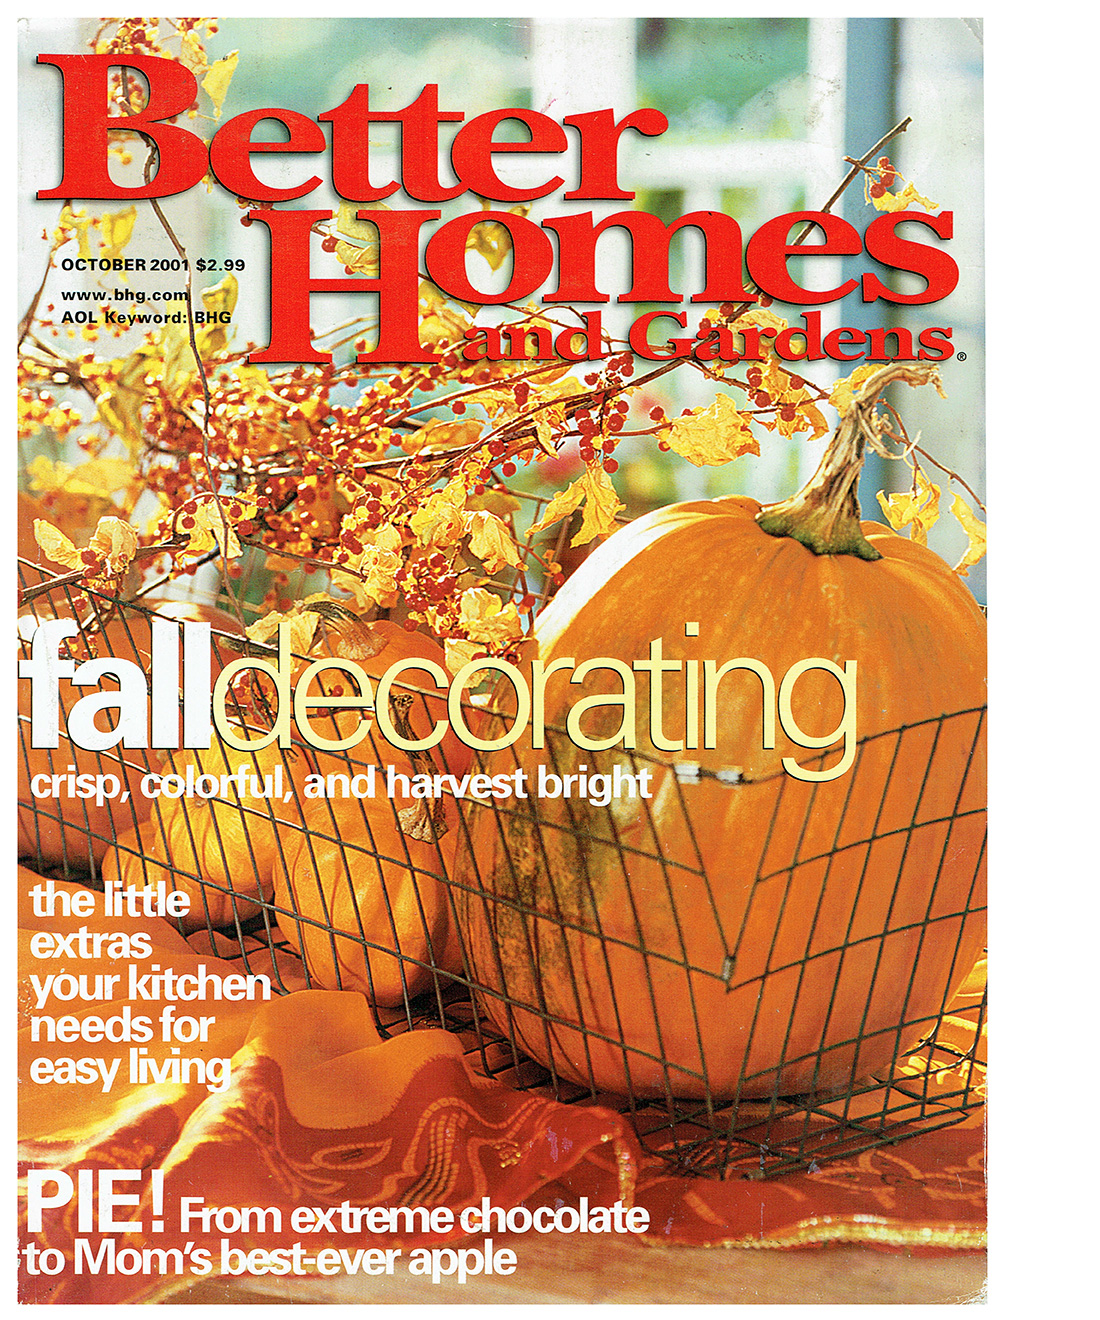 2001_08_BetterHomesandGardens